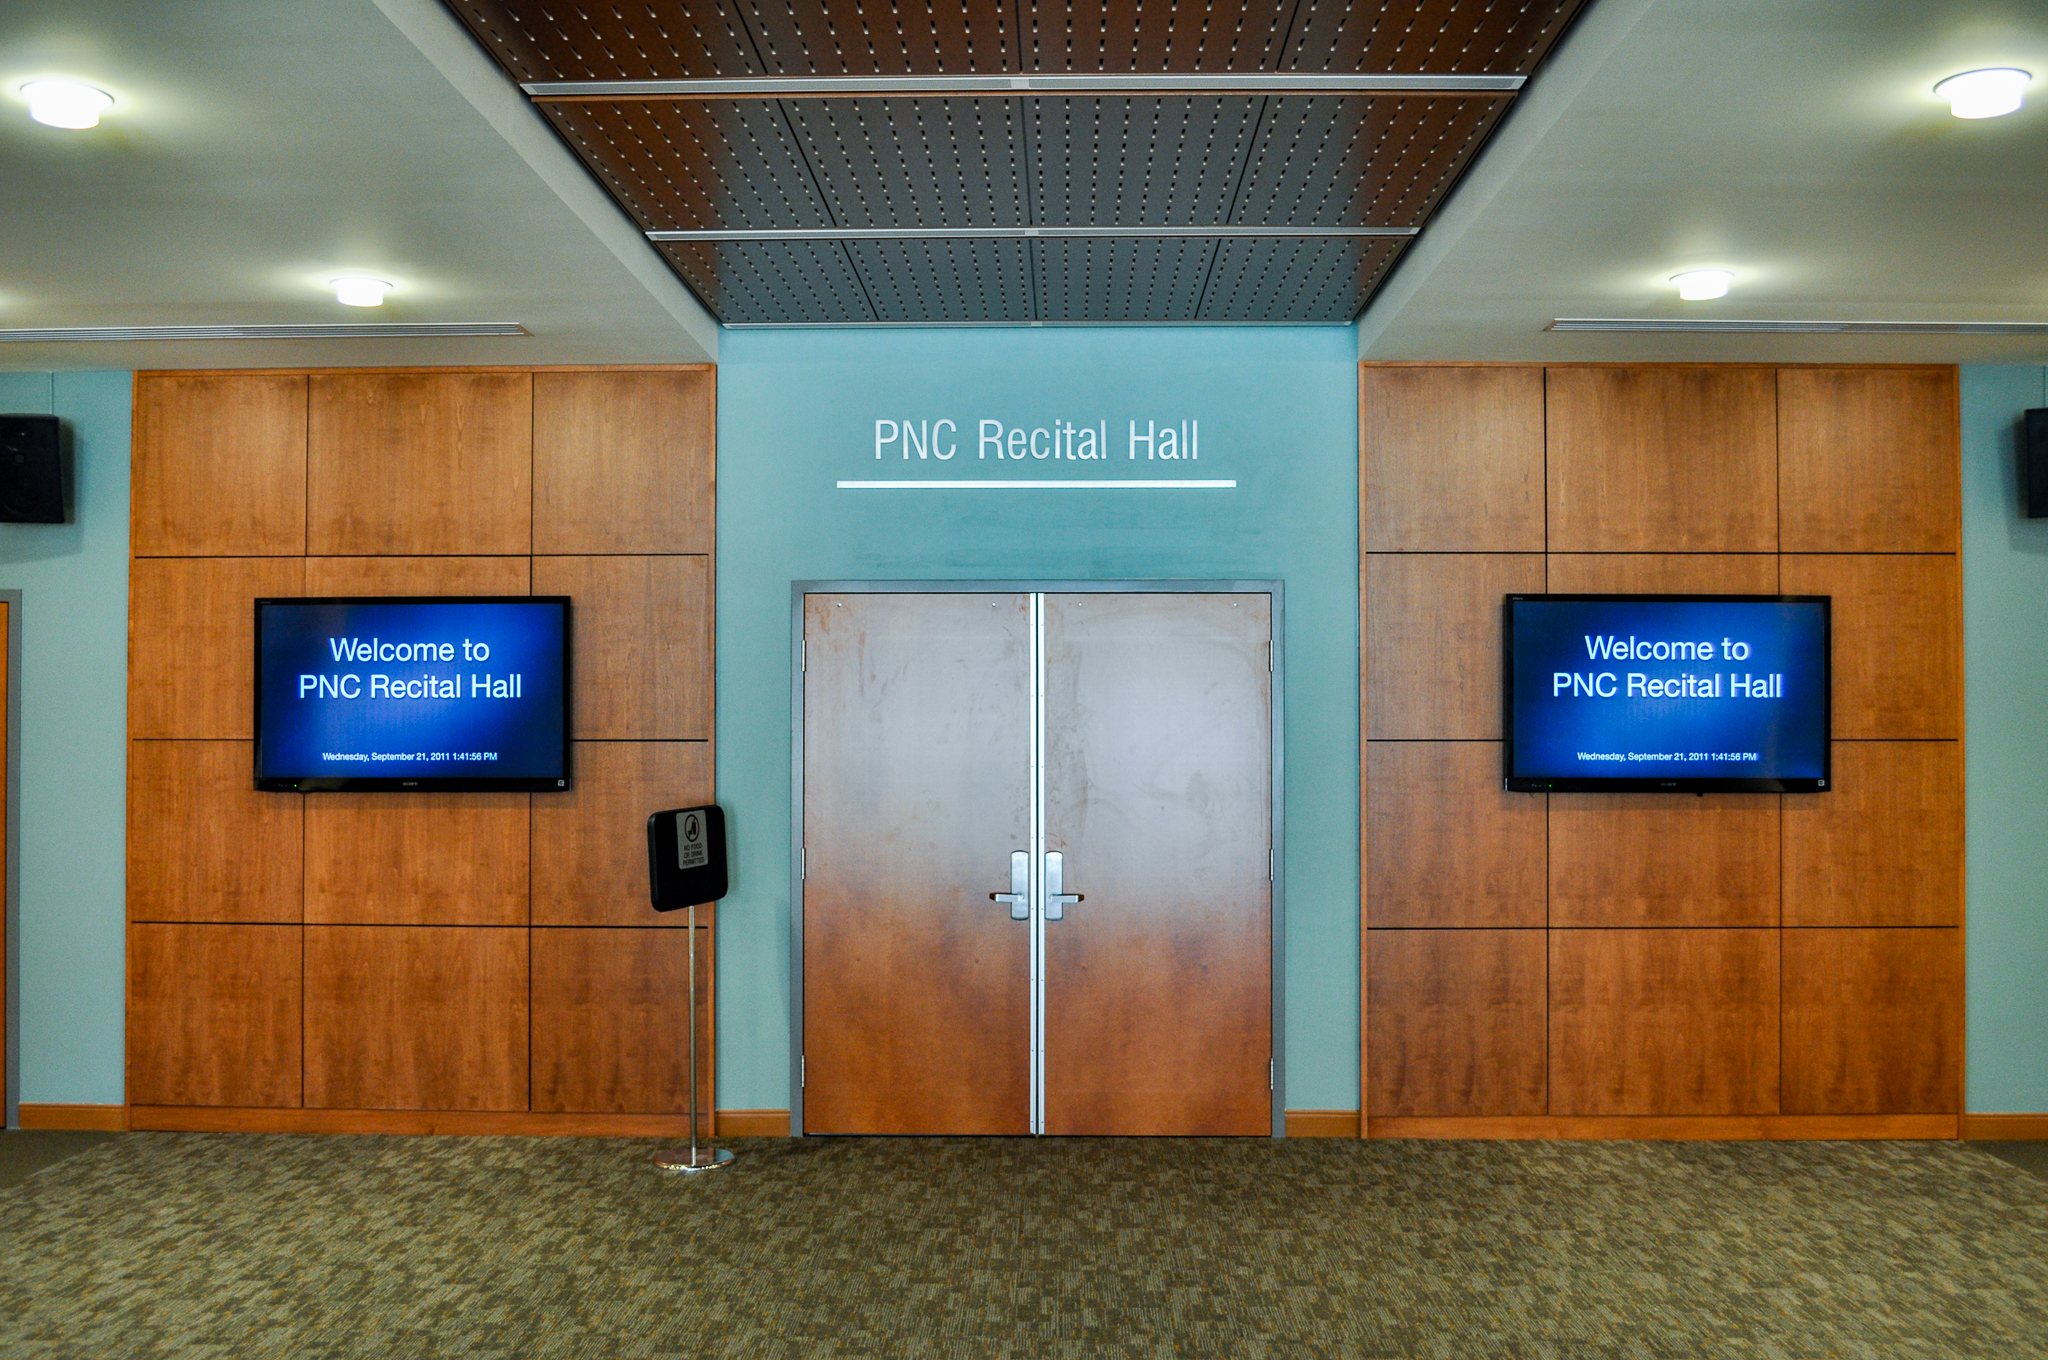 pnc recital hall lobby